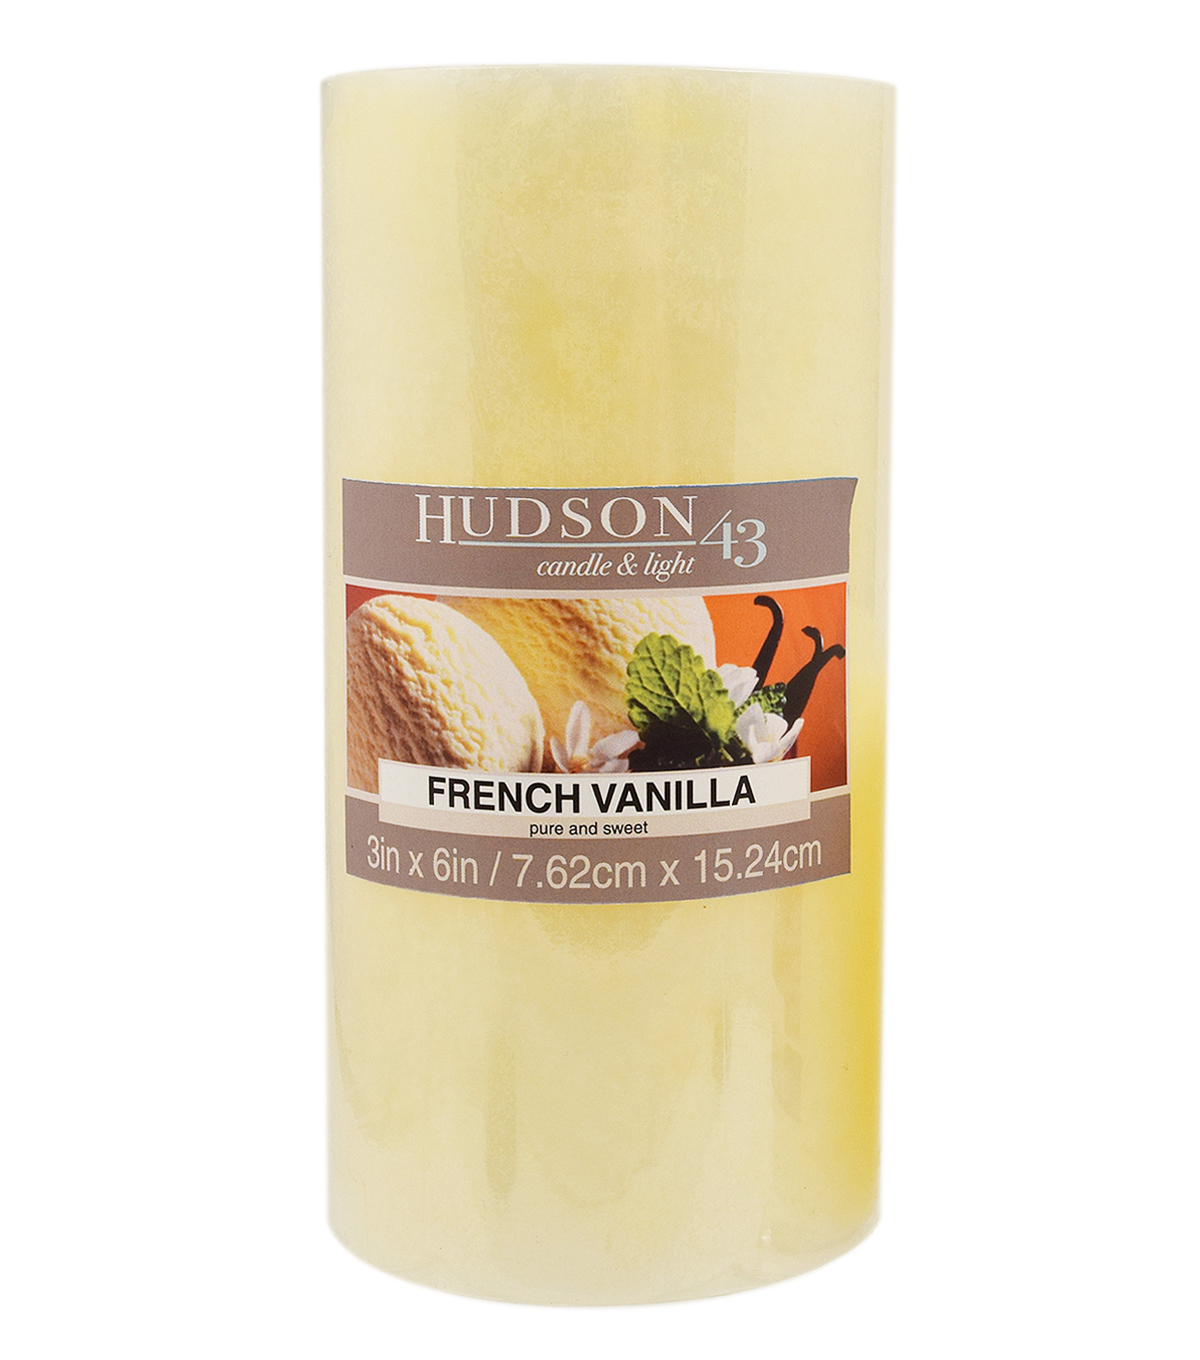 Hudson 43™ Candle & Light Collection 3X6 Pillar French Vanilla